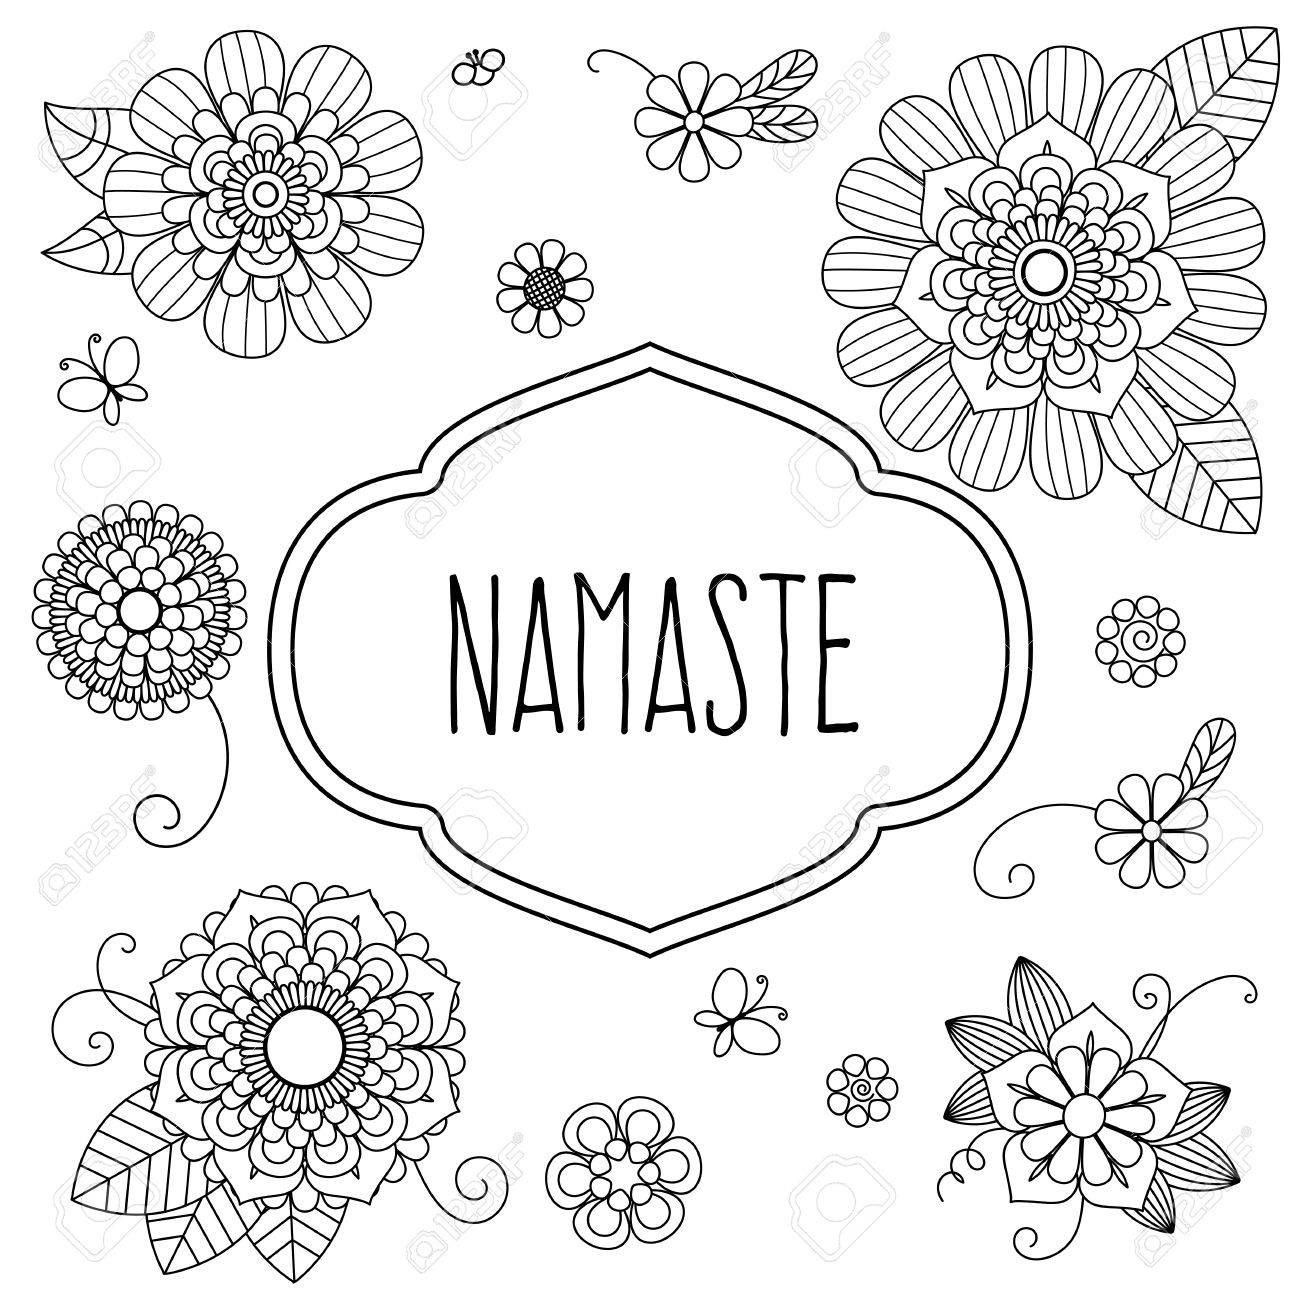 Indian welcome greeting namaste decorated with floral elements indian welcome greeting namaste decorated with floral elements translation is hello stock vector m4hsunfo